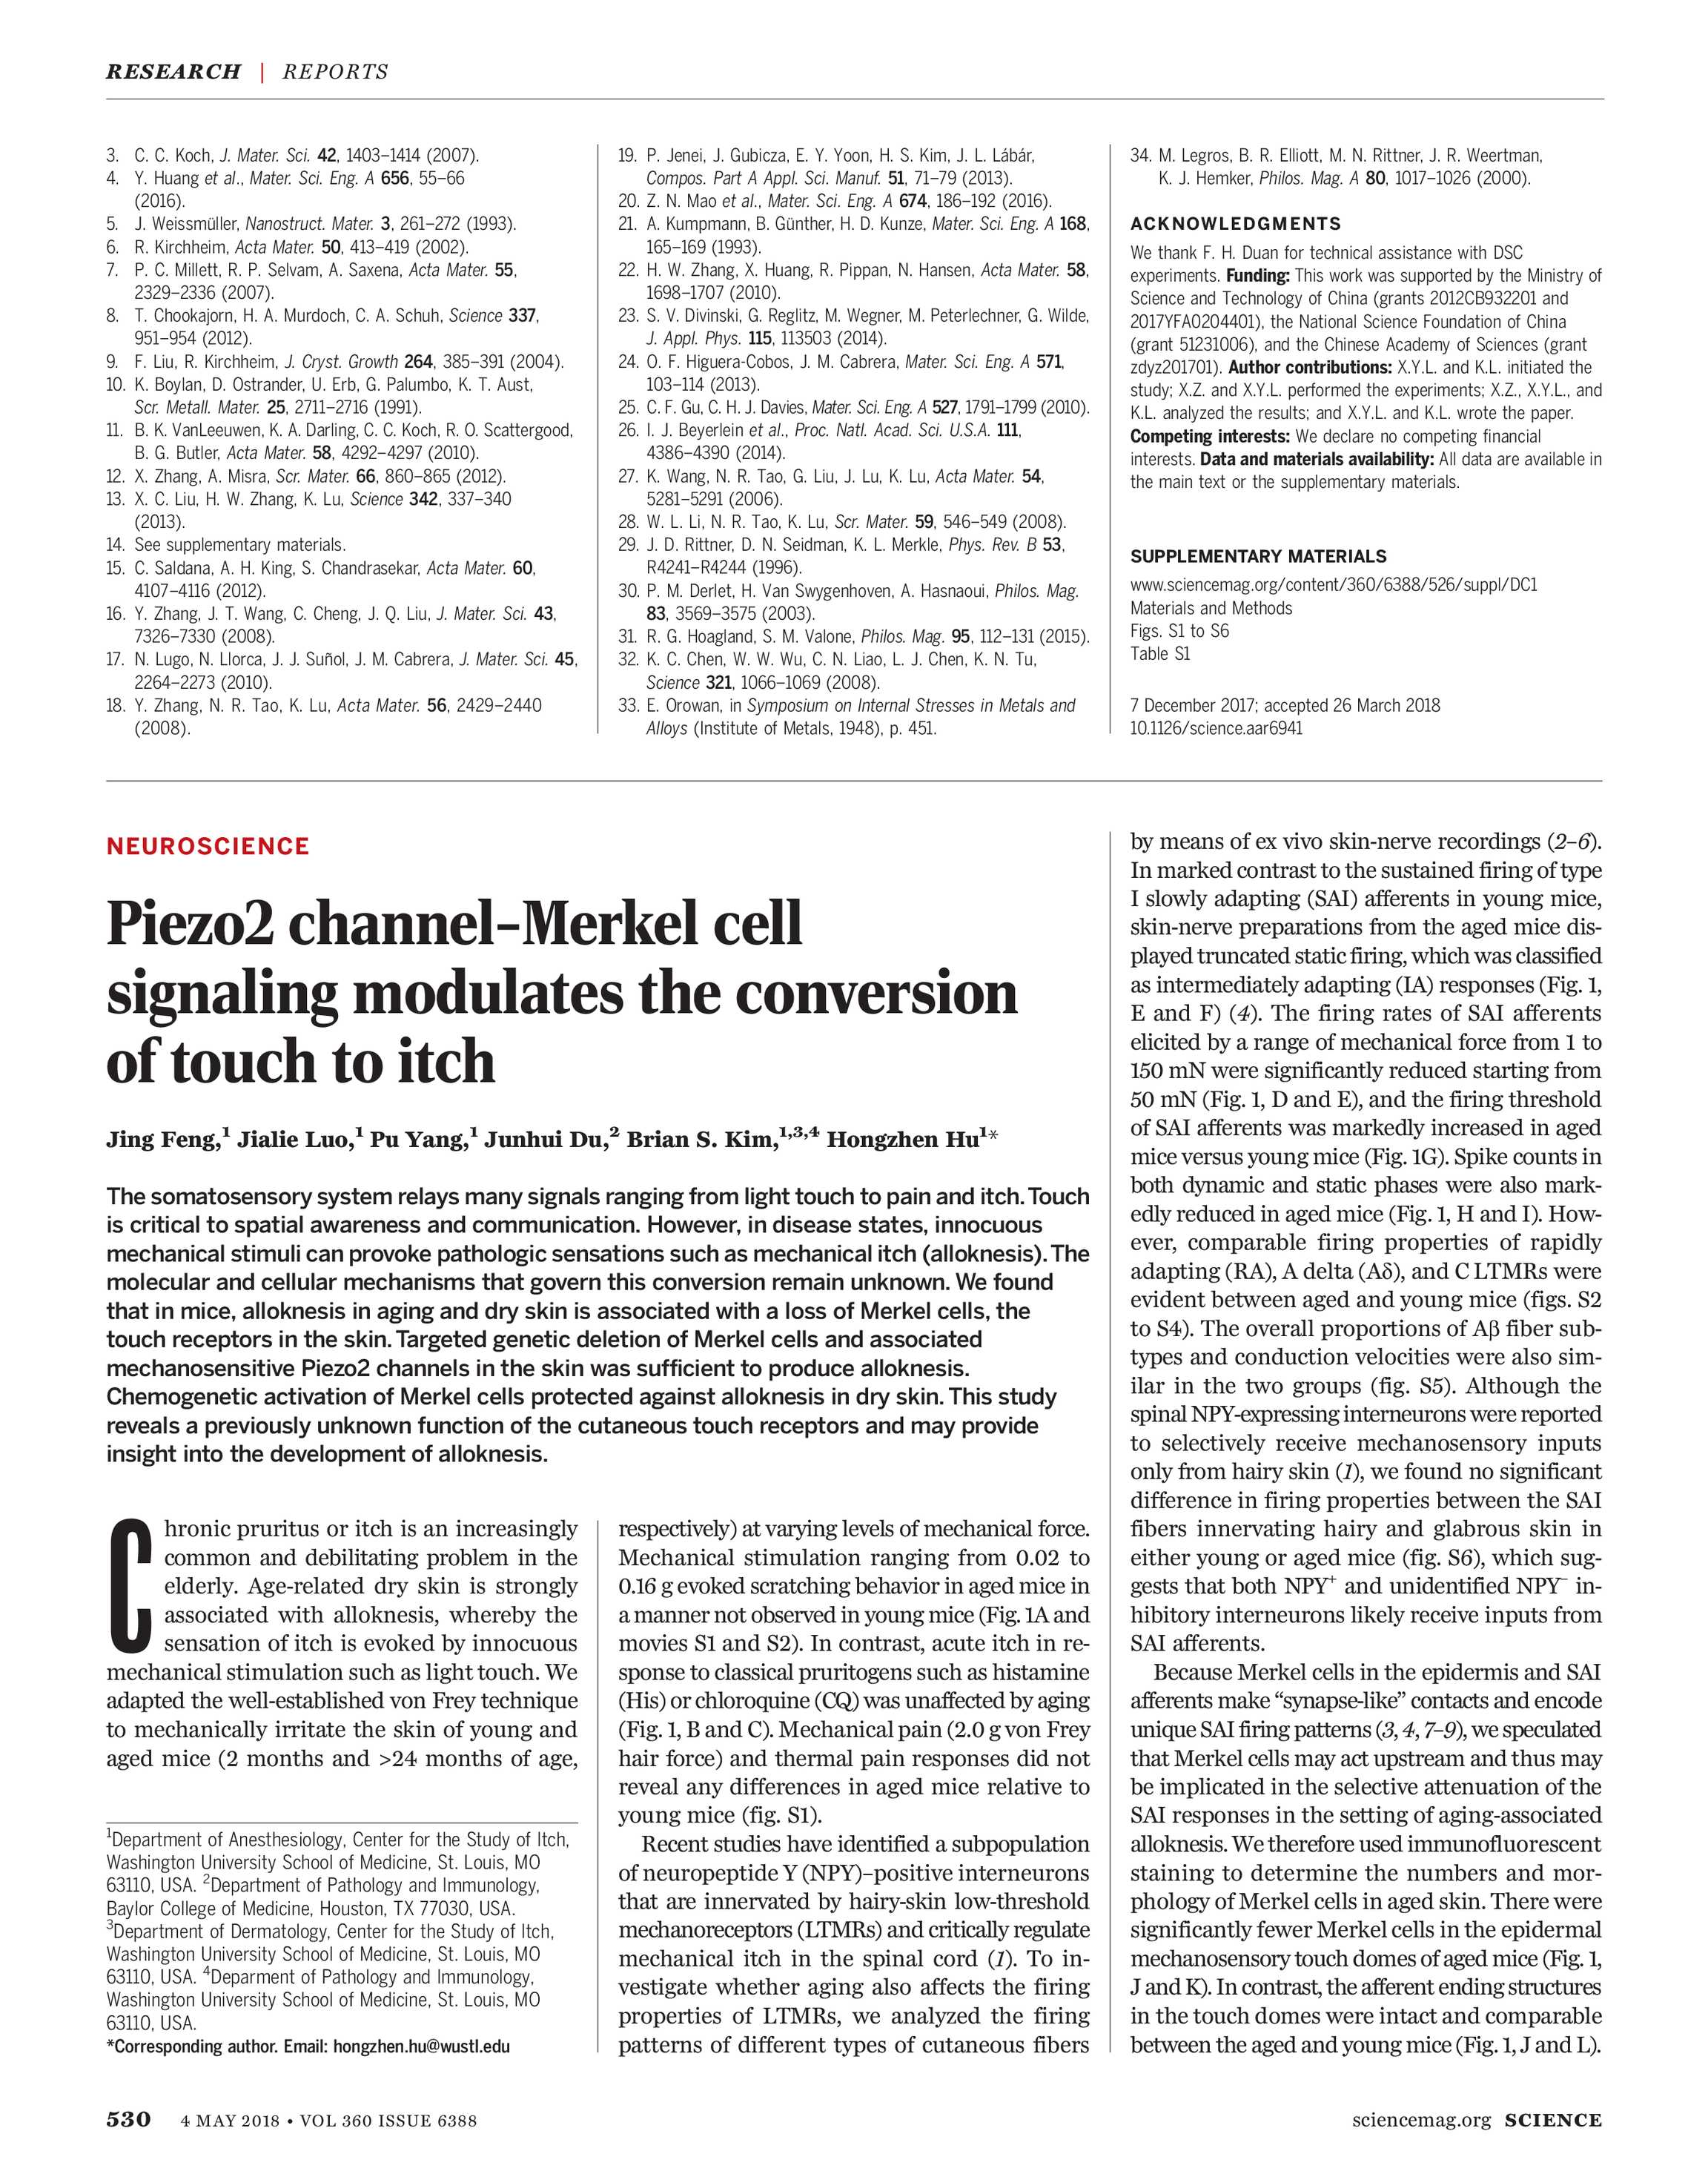 Science Magazine - May 4, 2018 - page 530